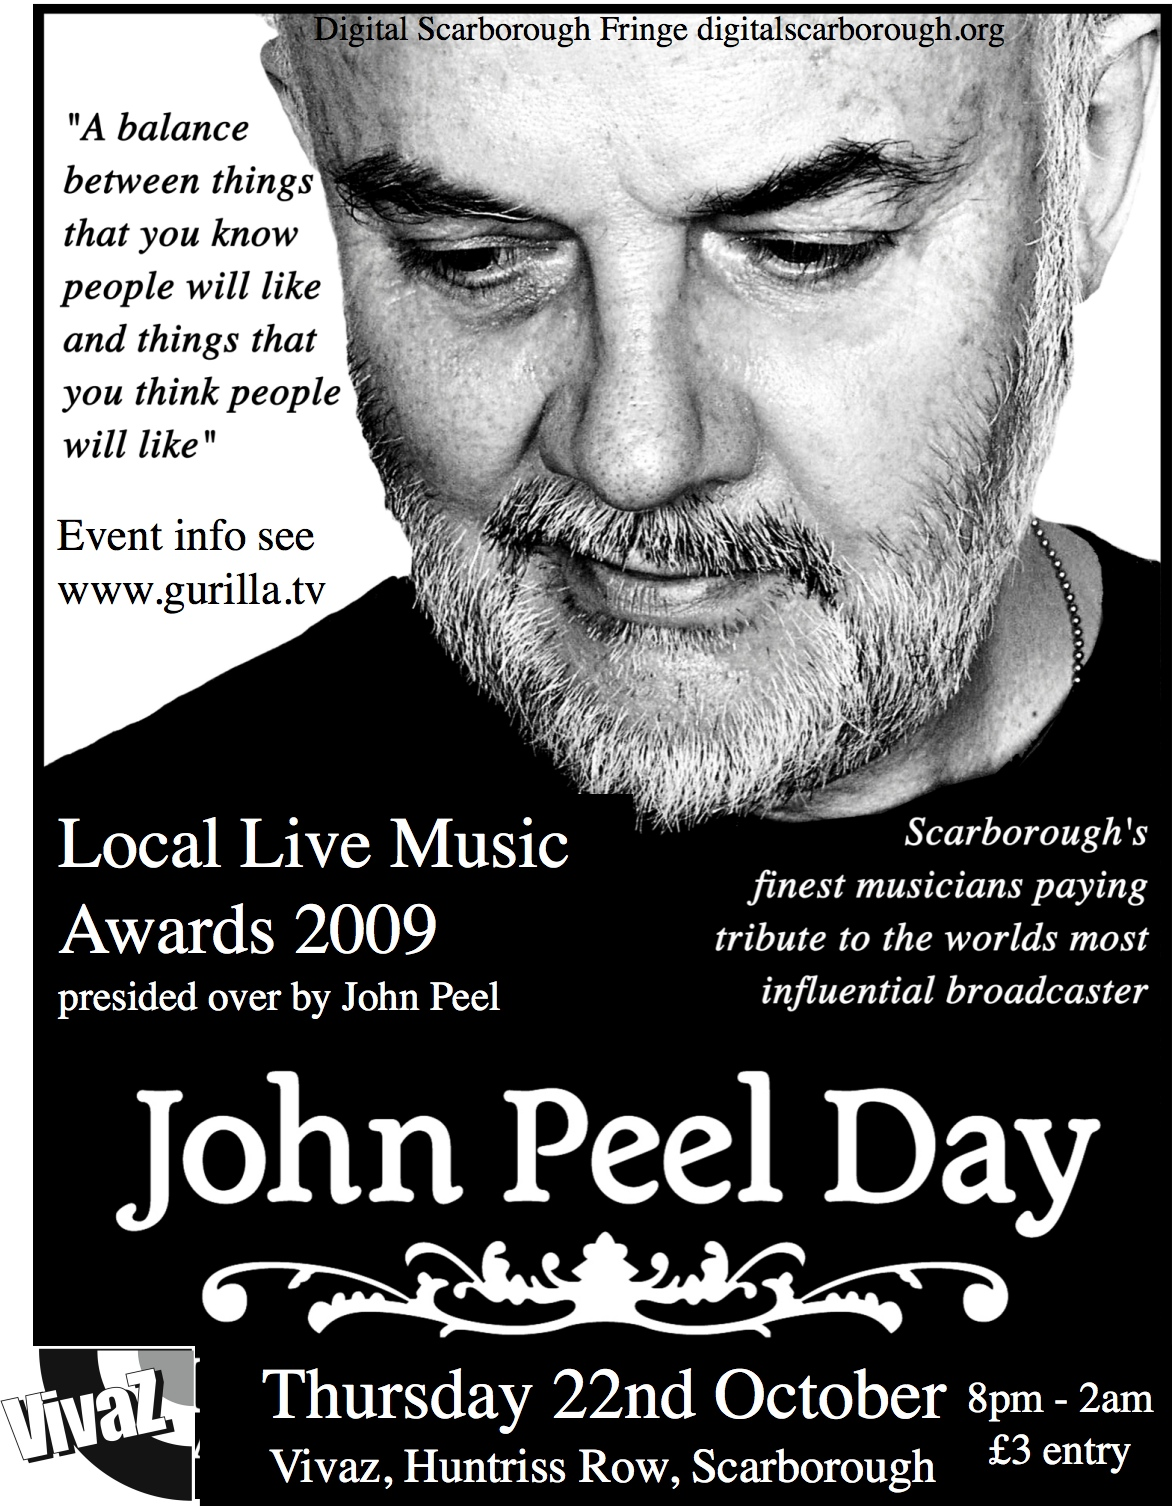 johnpeel09 for. mature plumpers and mature plumpers